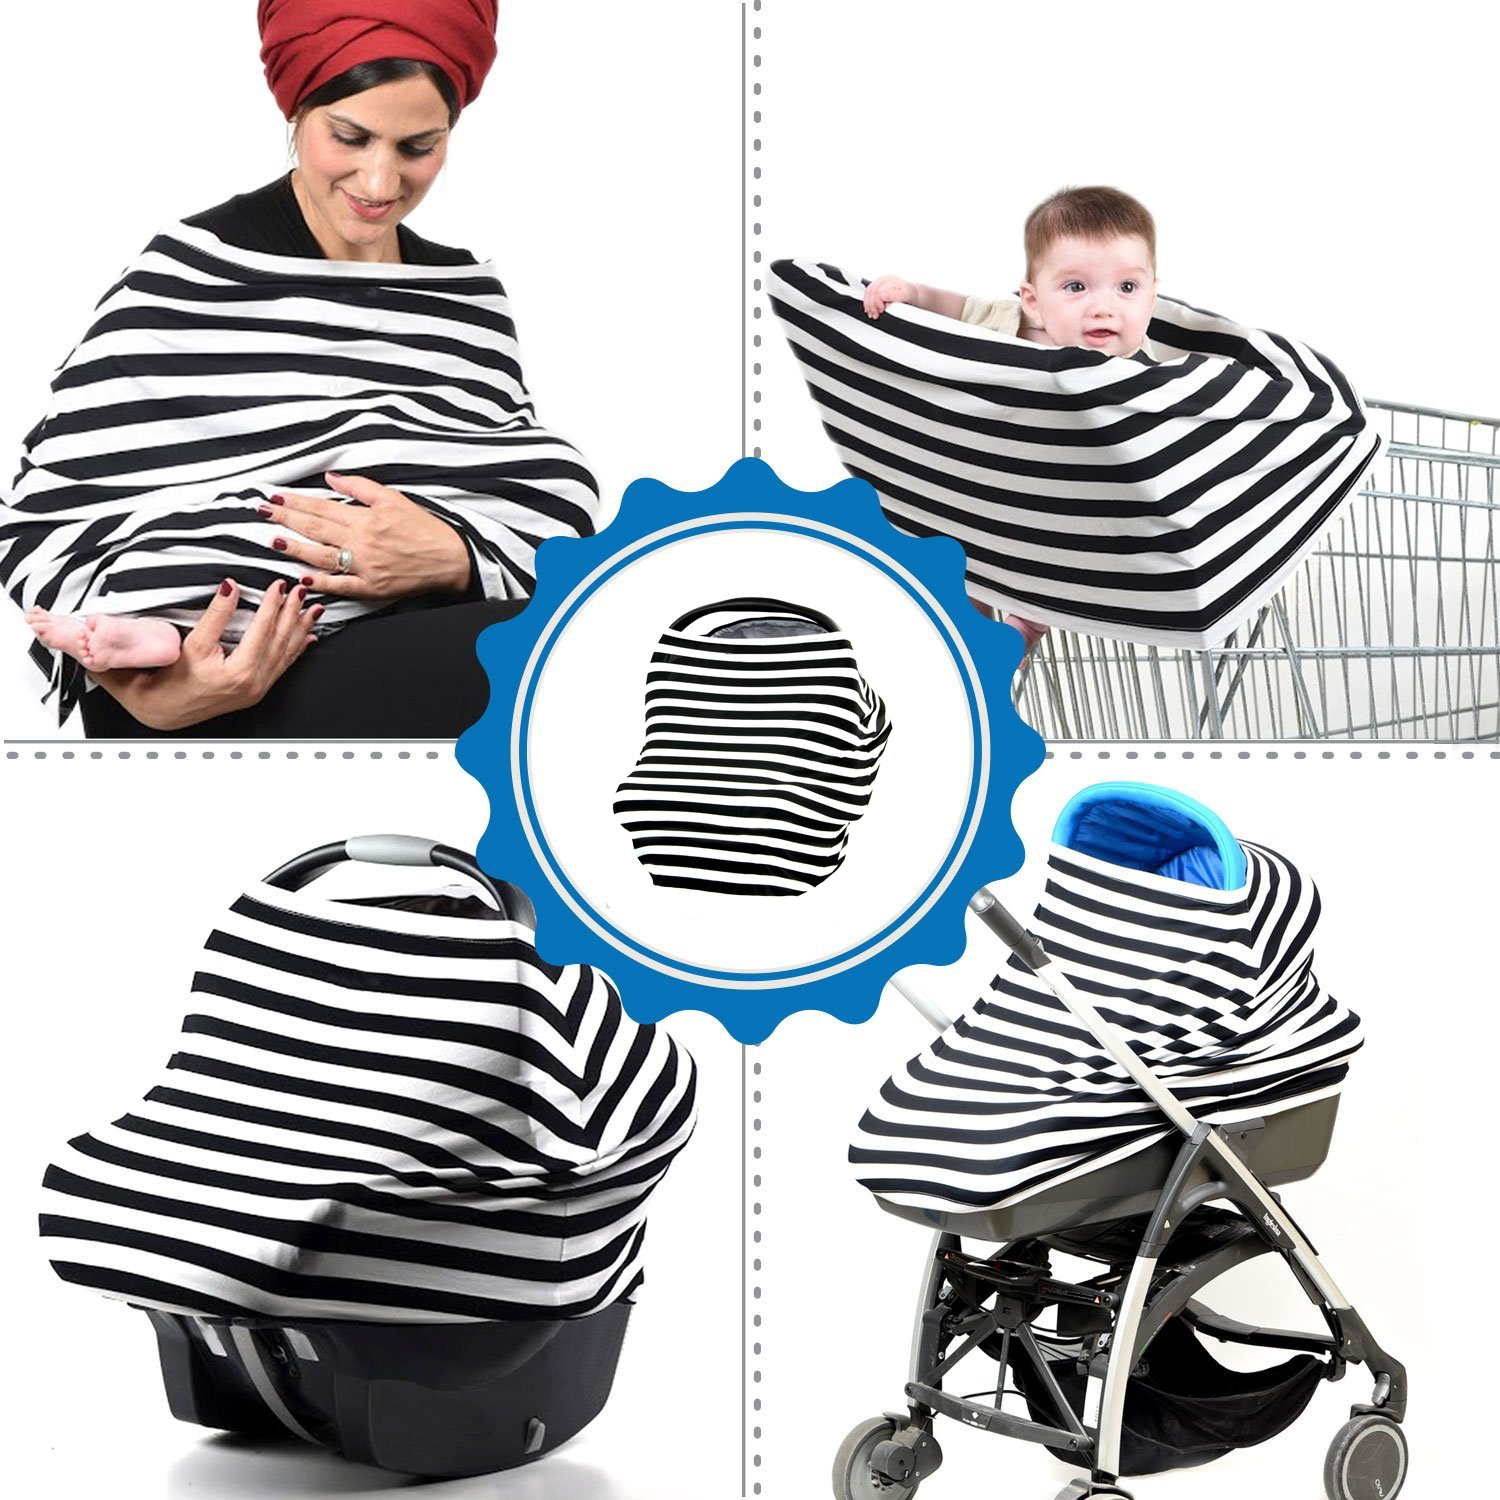 3 in 1 Nursing Covers Breastfeeding & Baby Car Seat Cover canopy, Universal Fit for Newborn baby boy and girl